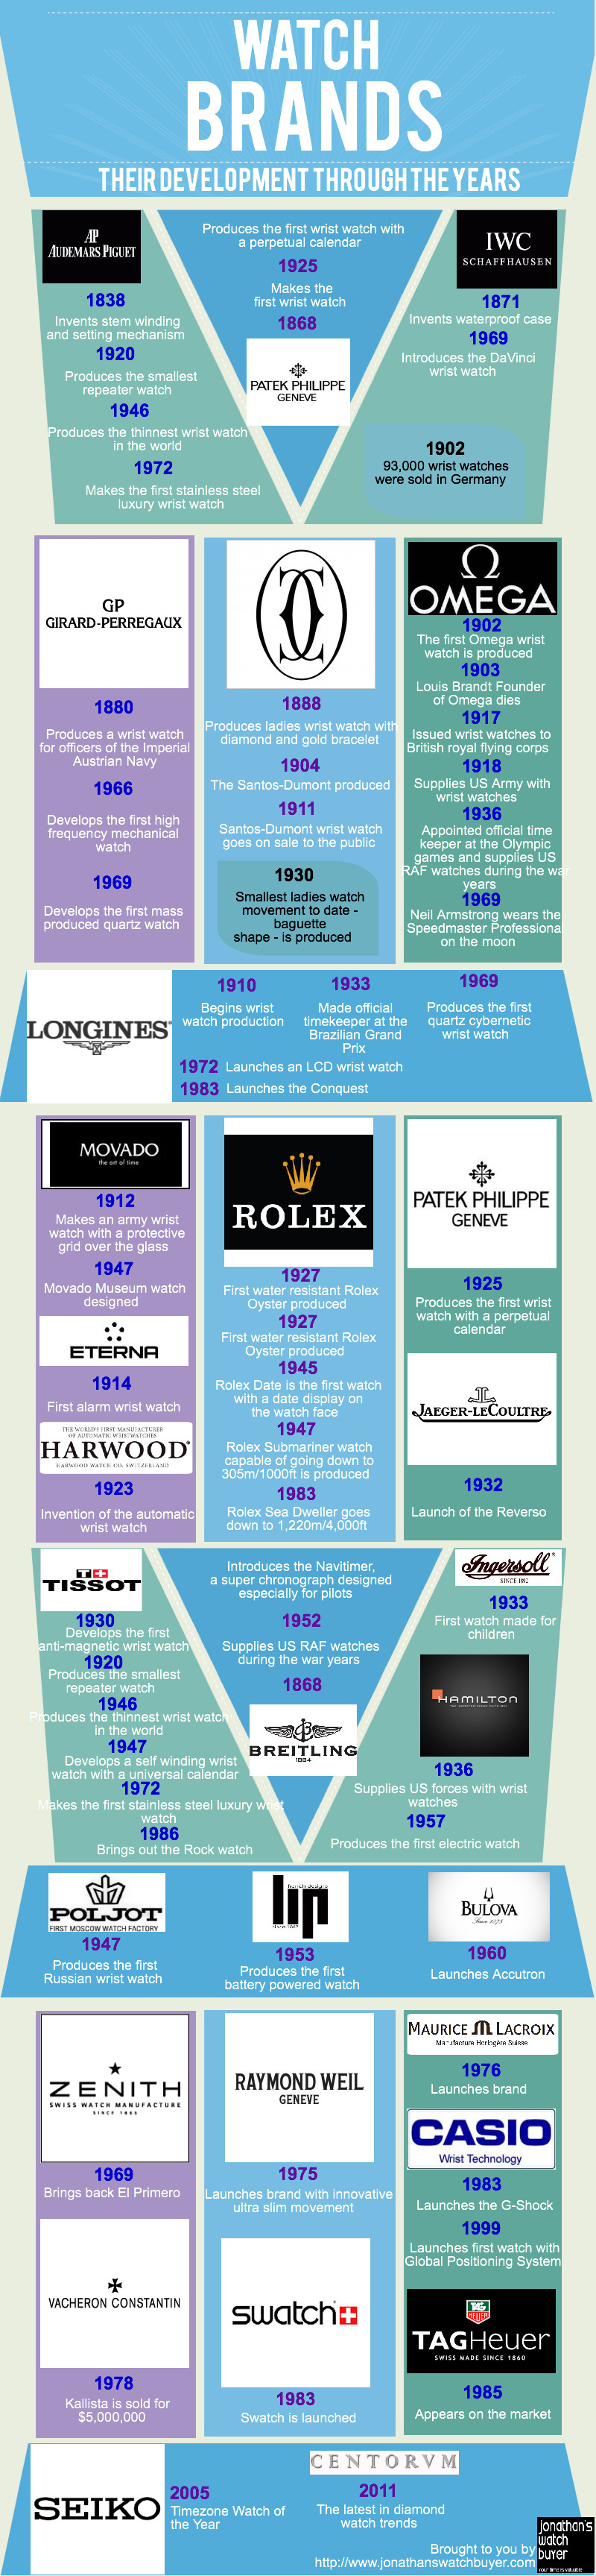 Watch Brands Infographic